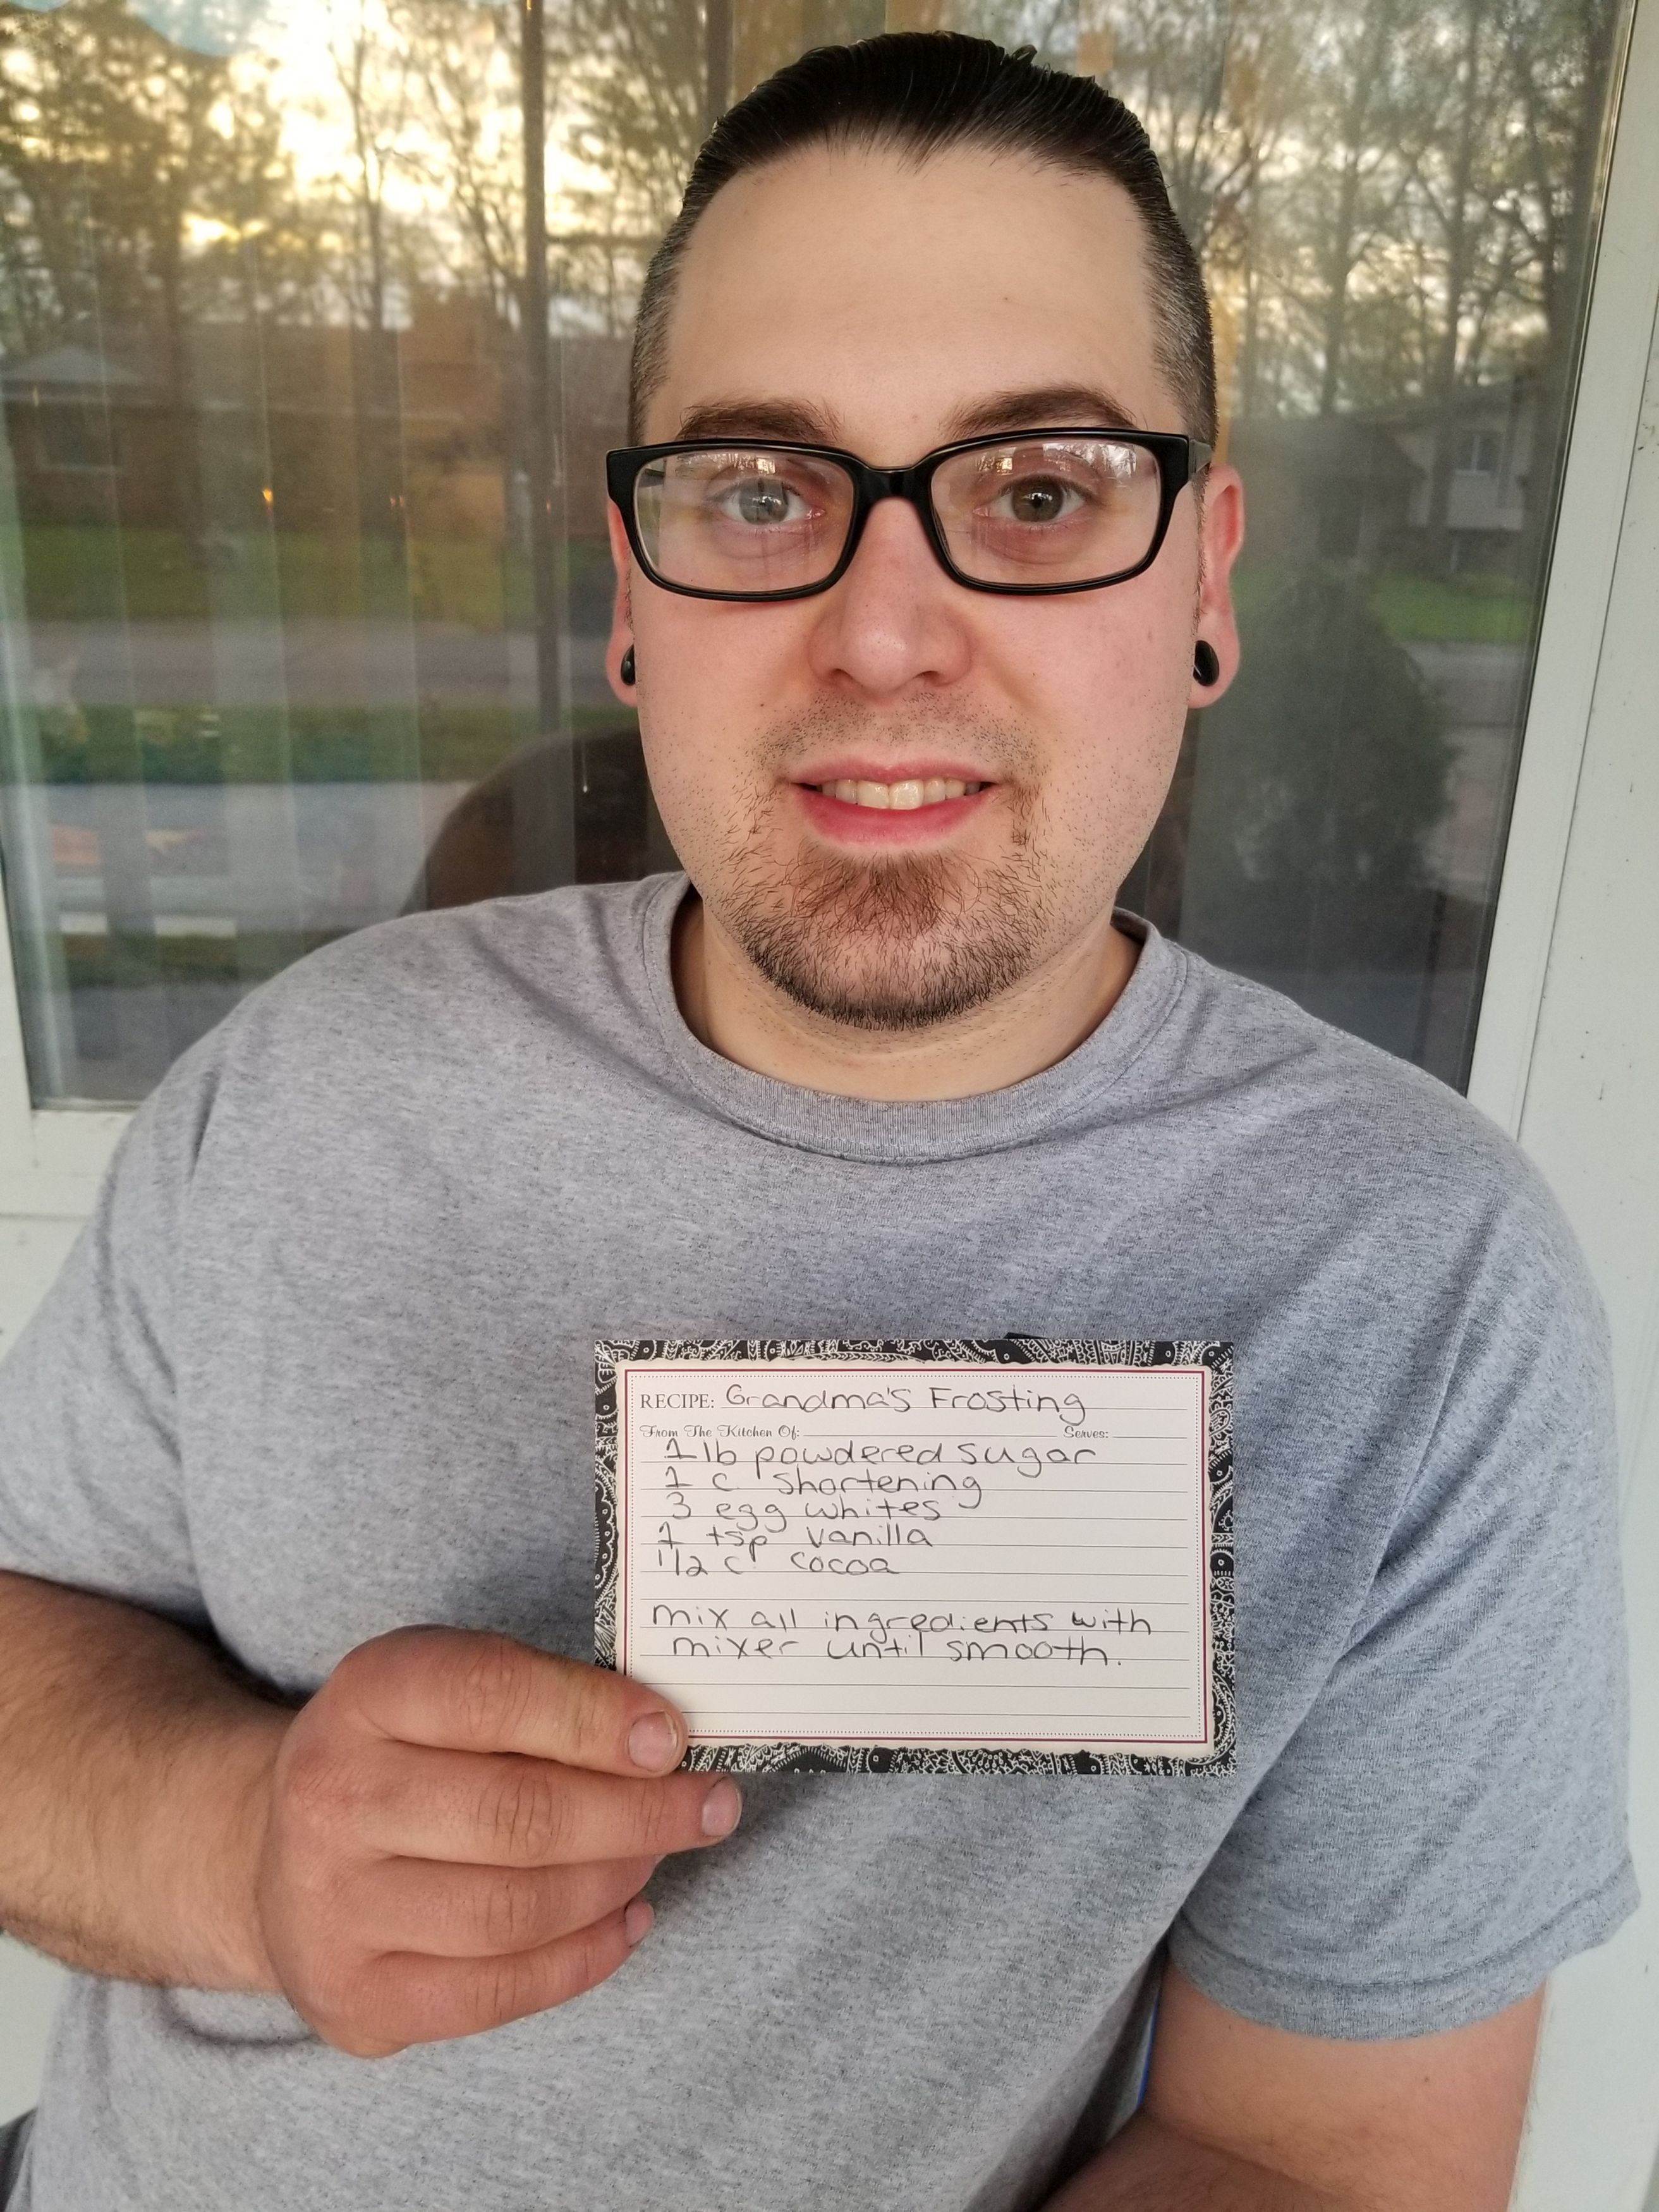 Andrew Paulson with recipe for chocolate frosting